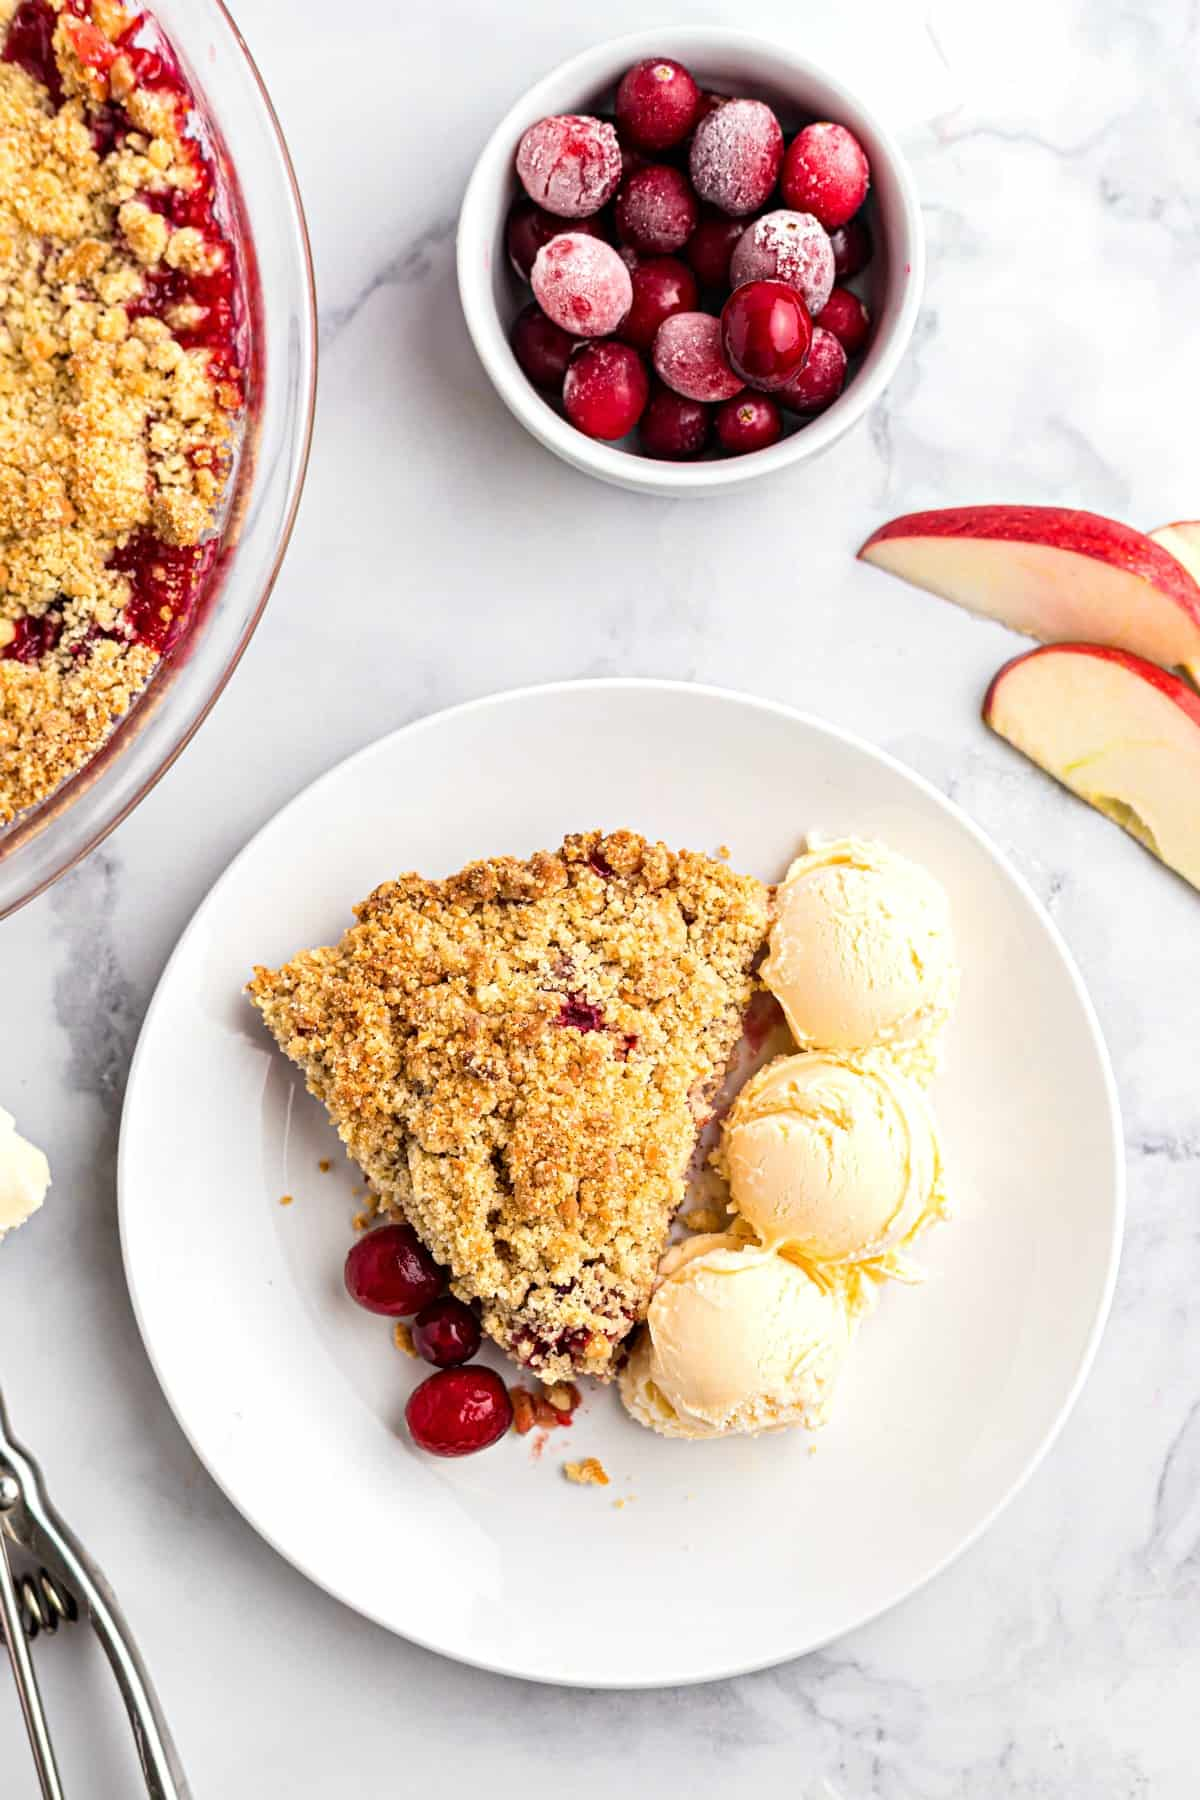 Three scoops of vanilla ice cream on a plate with a slice of apple cranberry crumble.